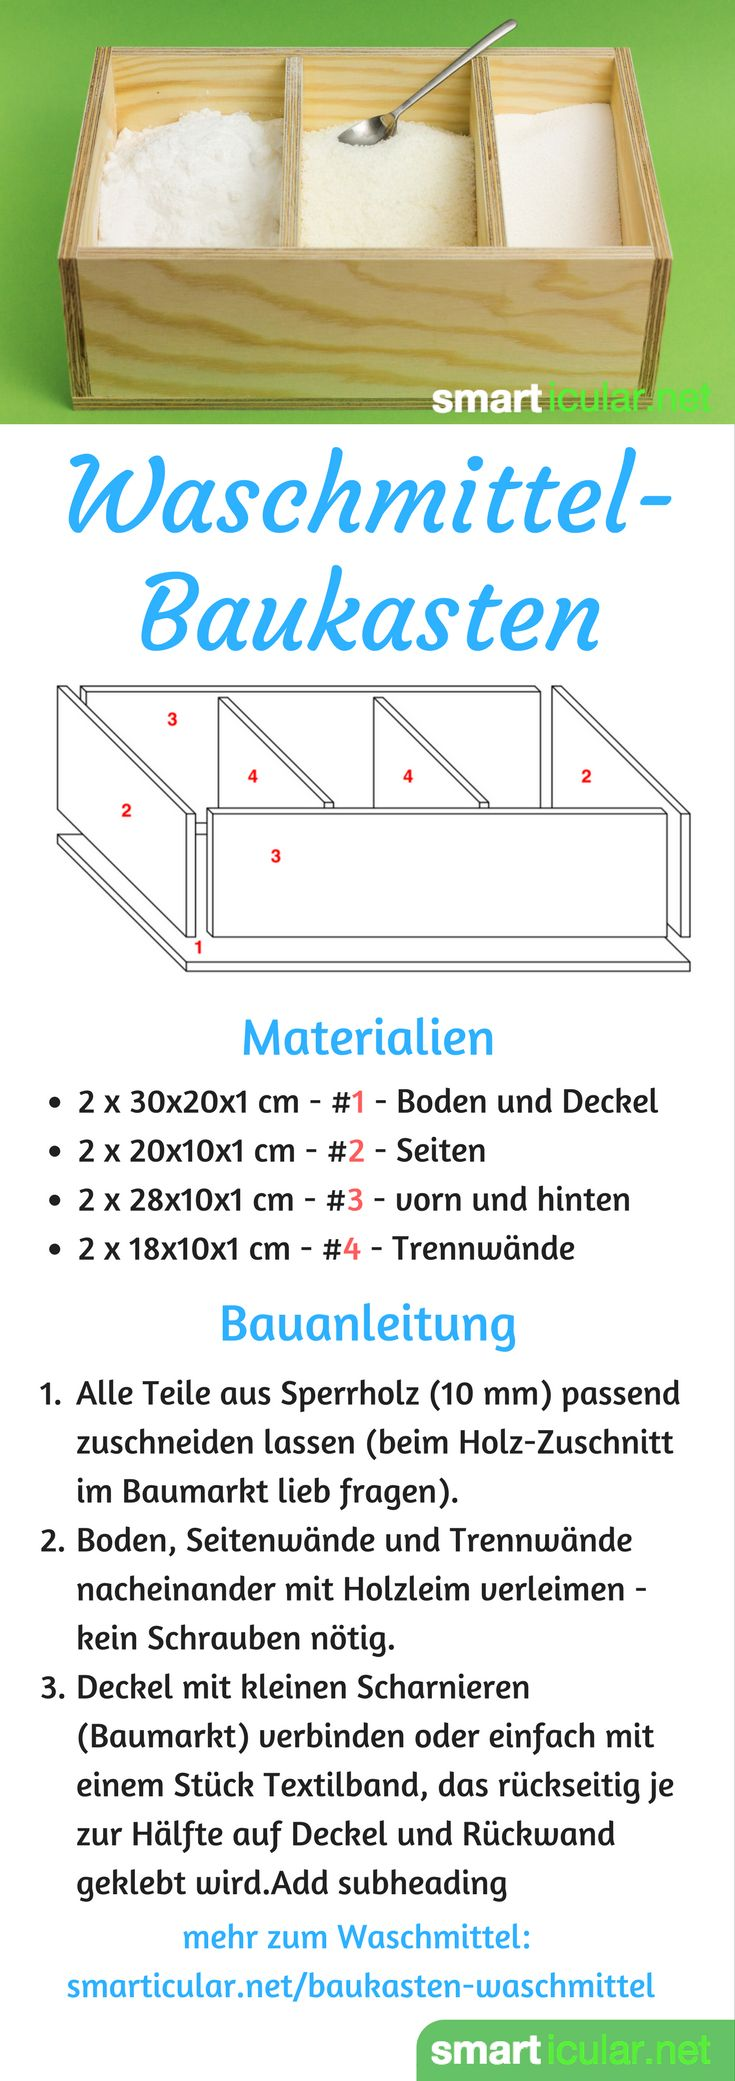 275 besten diy bilder auf pinterest naturkosmetik selbstgemacht und advent. Black Bedroom Furniture Sets. Home Design Ideas